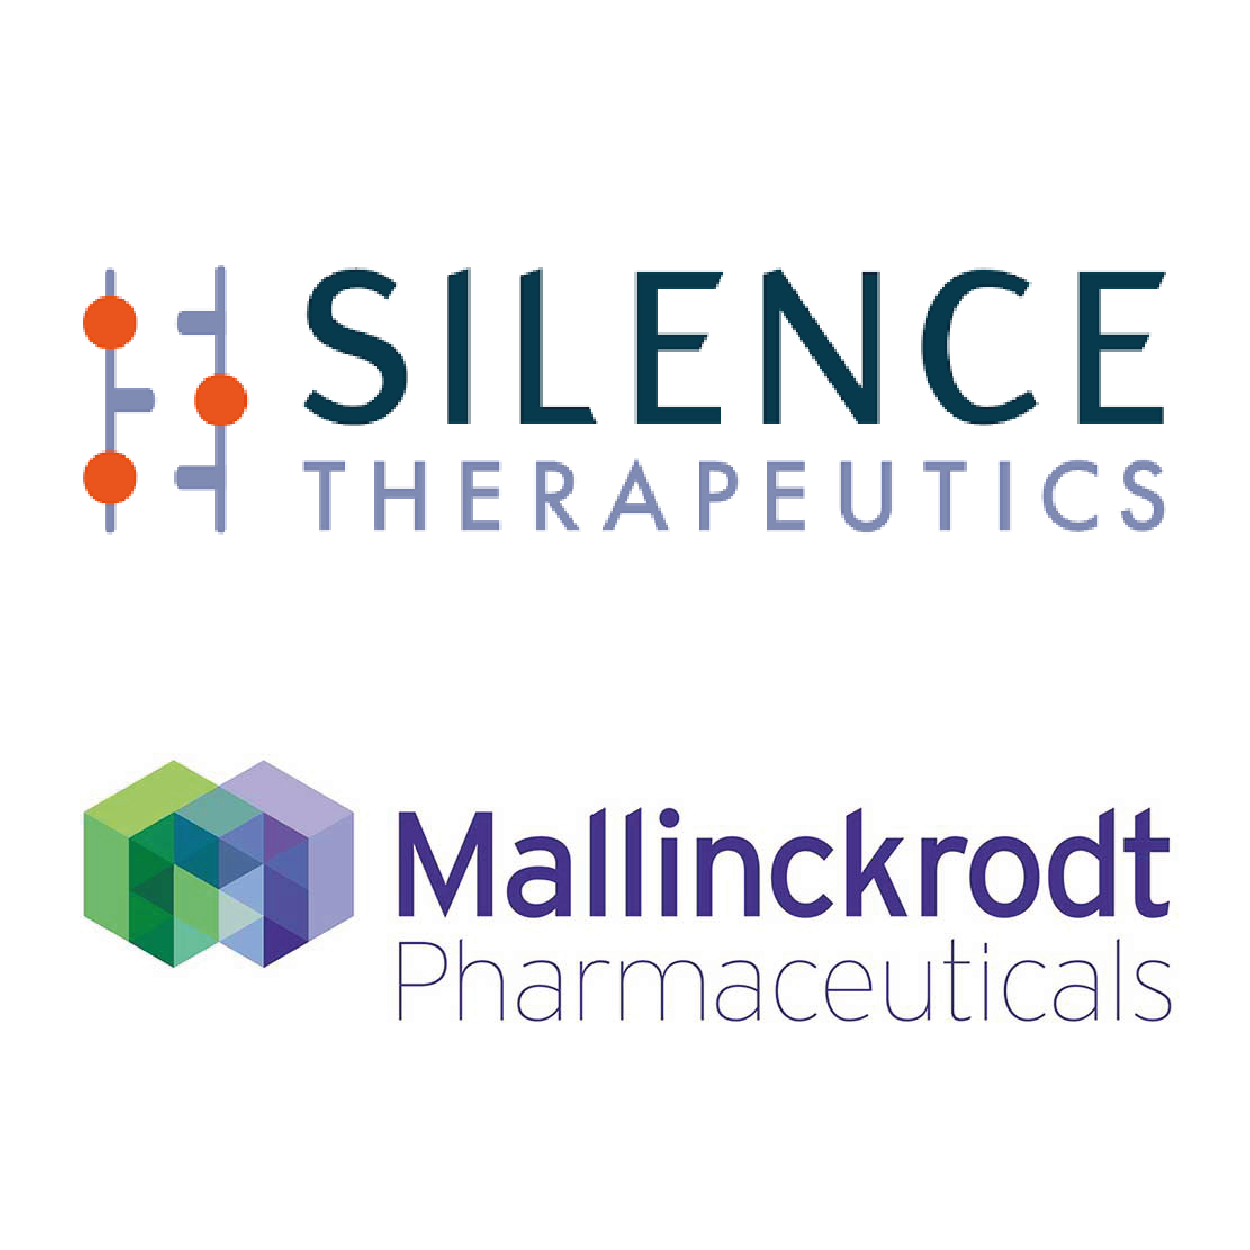 Silence Therapeutics and Mallinckrodt Pharmaceuticals